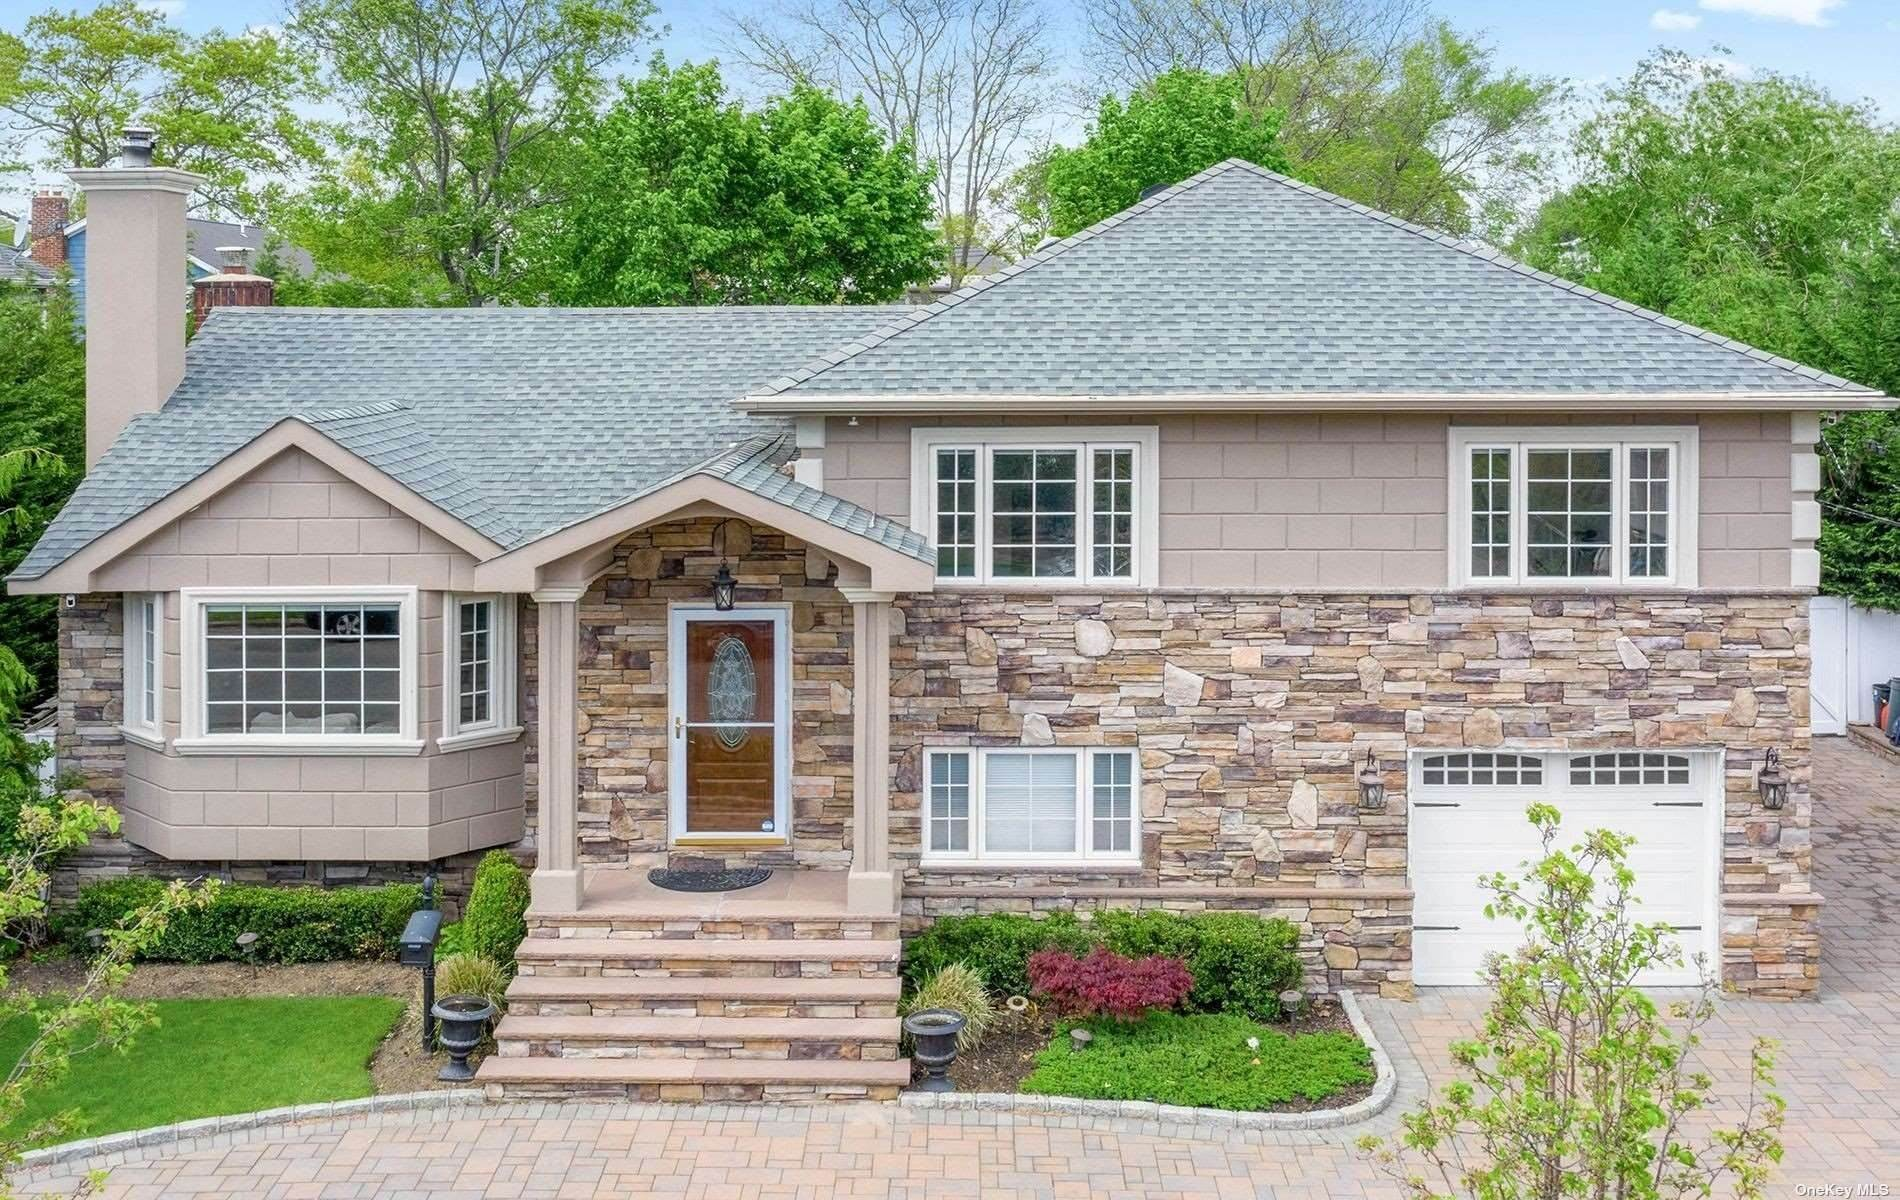 Residential for Sale at 2021 Monroe Avenue North Bellmore, New York 11710 United States